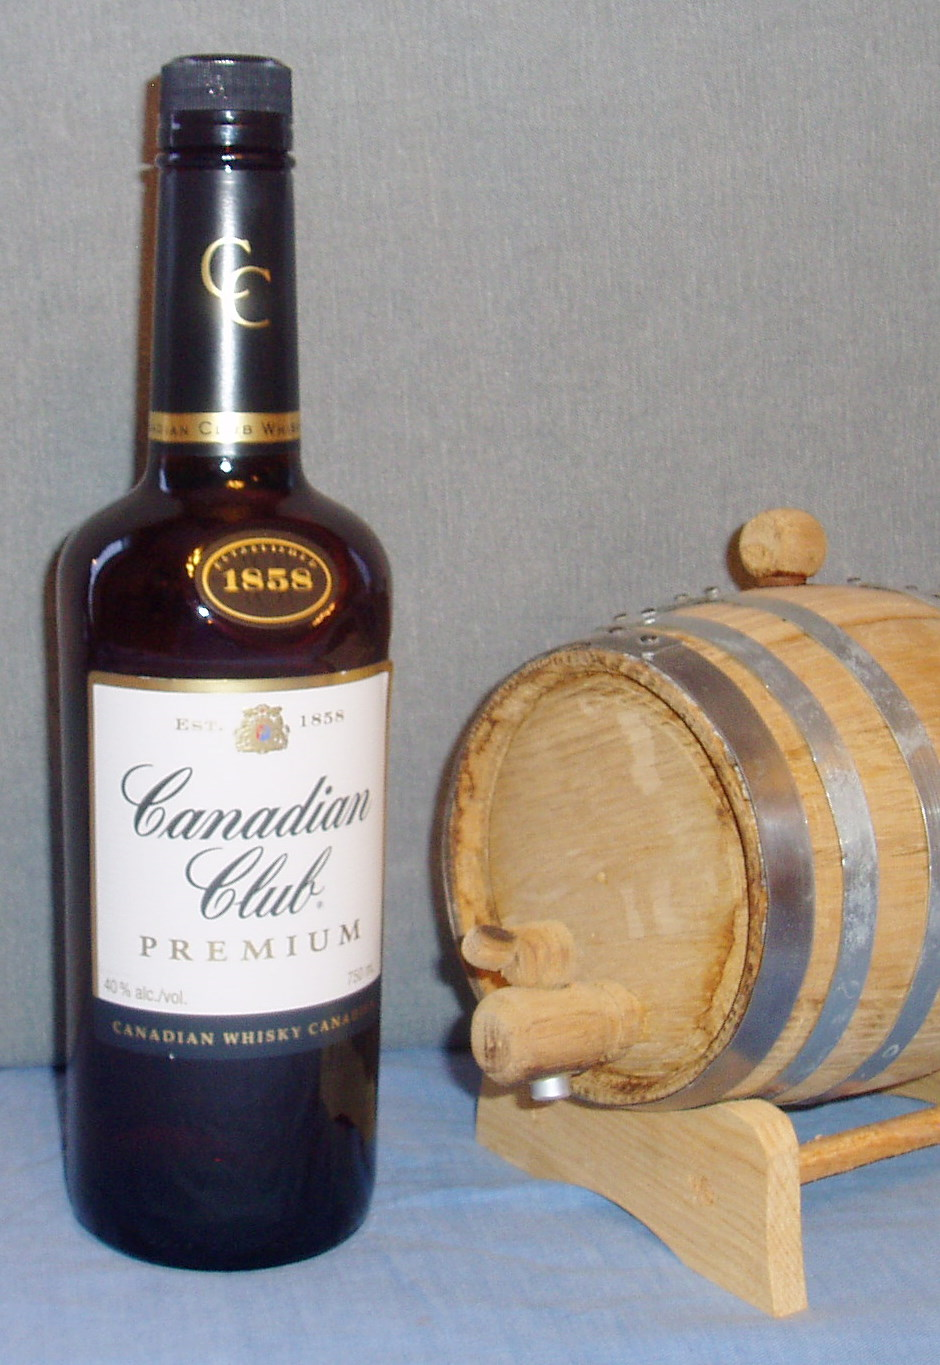 Canadian Club Premium